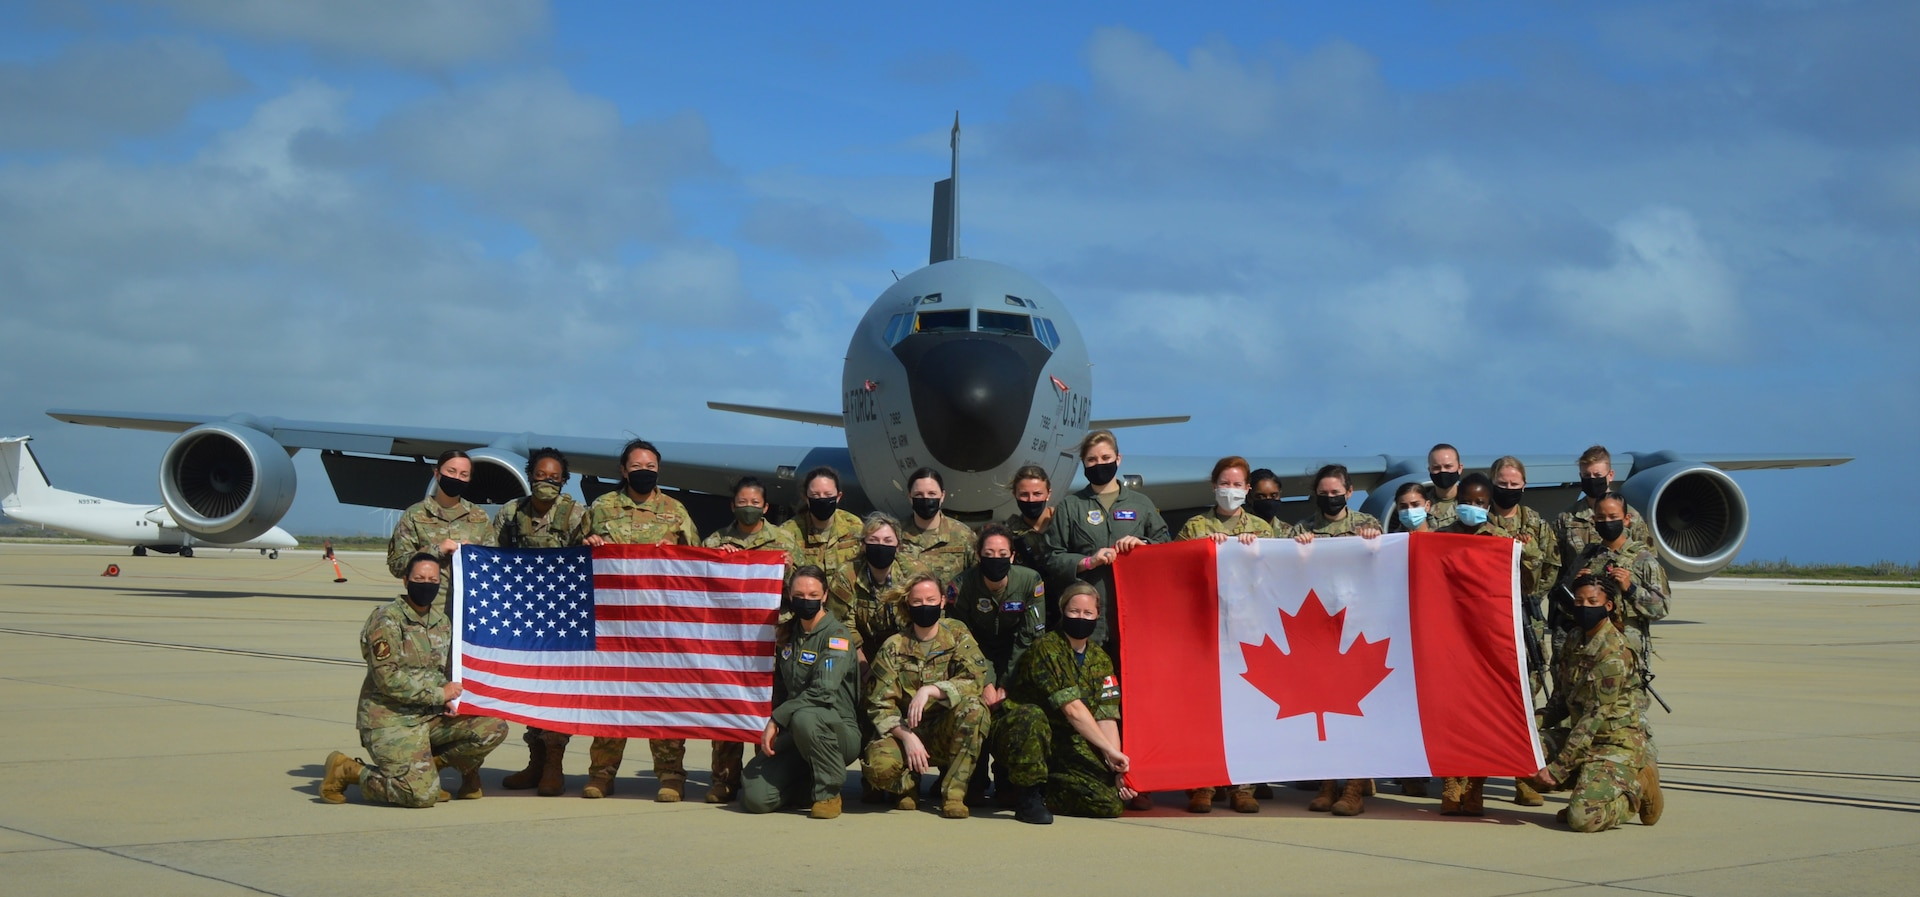 group photo of people in front of an aircraft